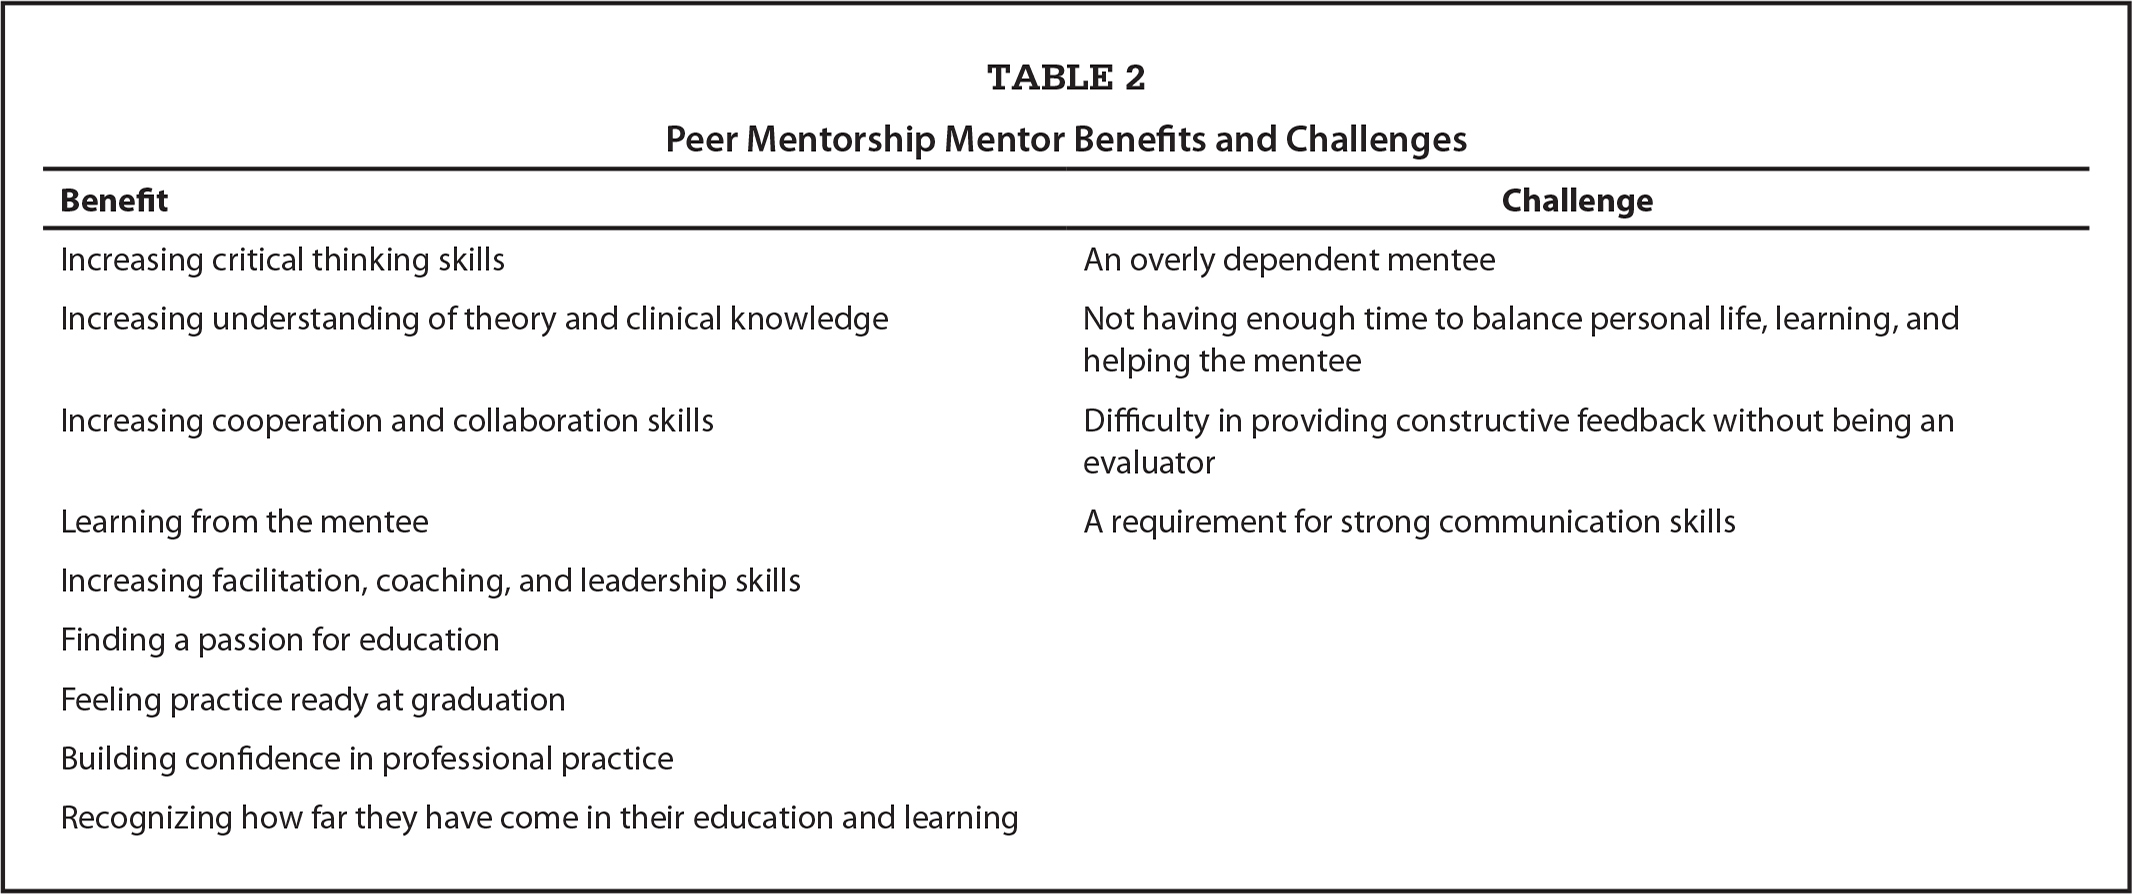 Peer Mentorship Mentor Benefits and Challenges